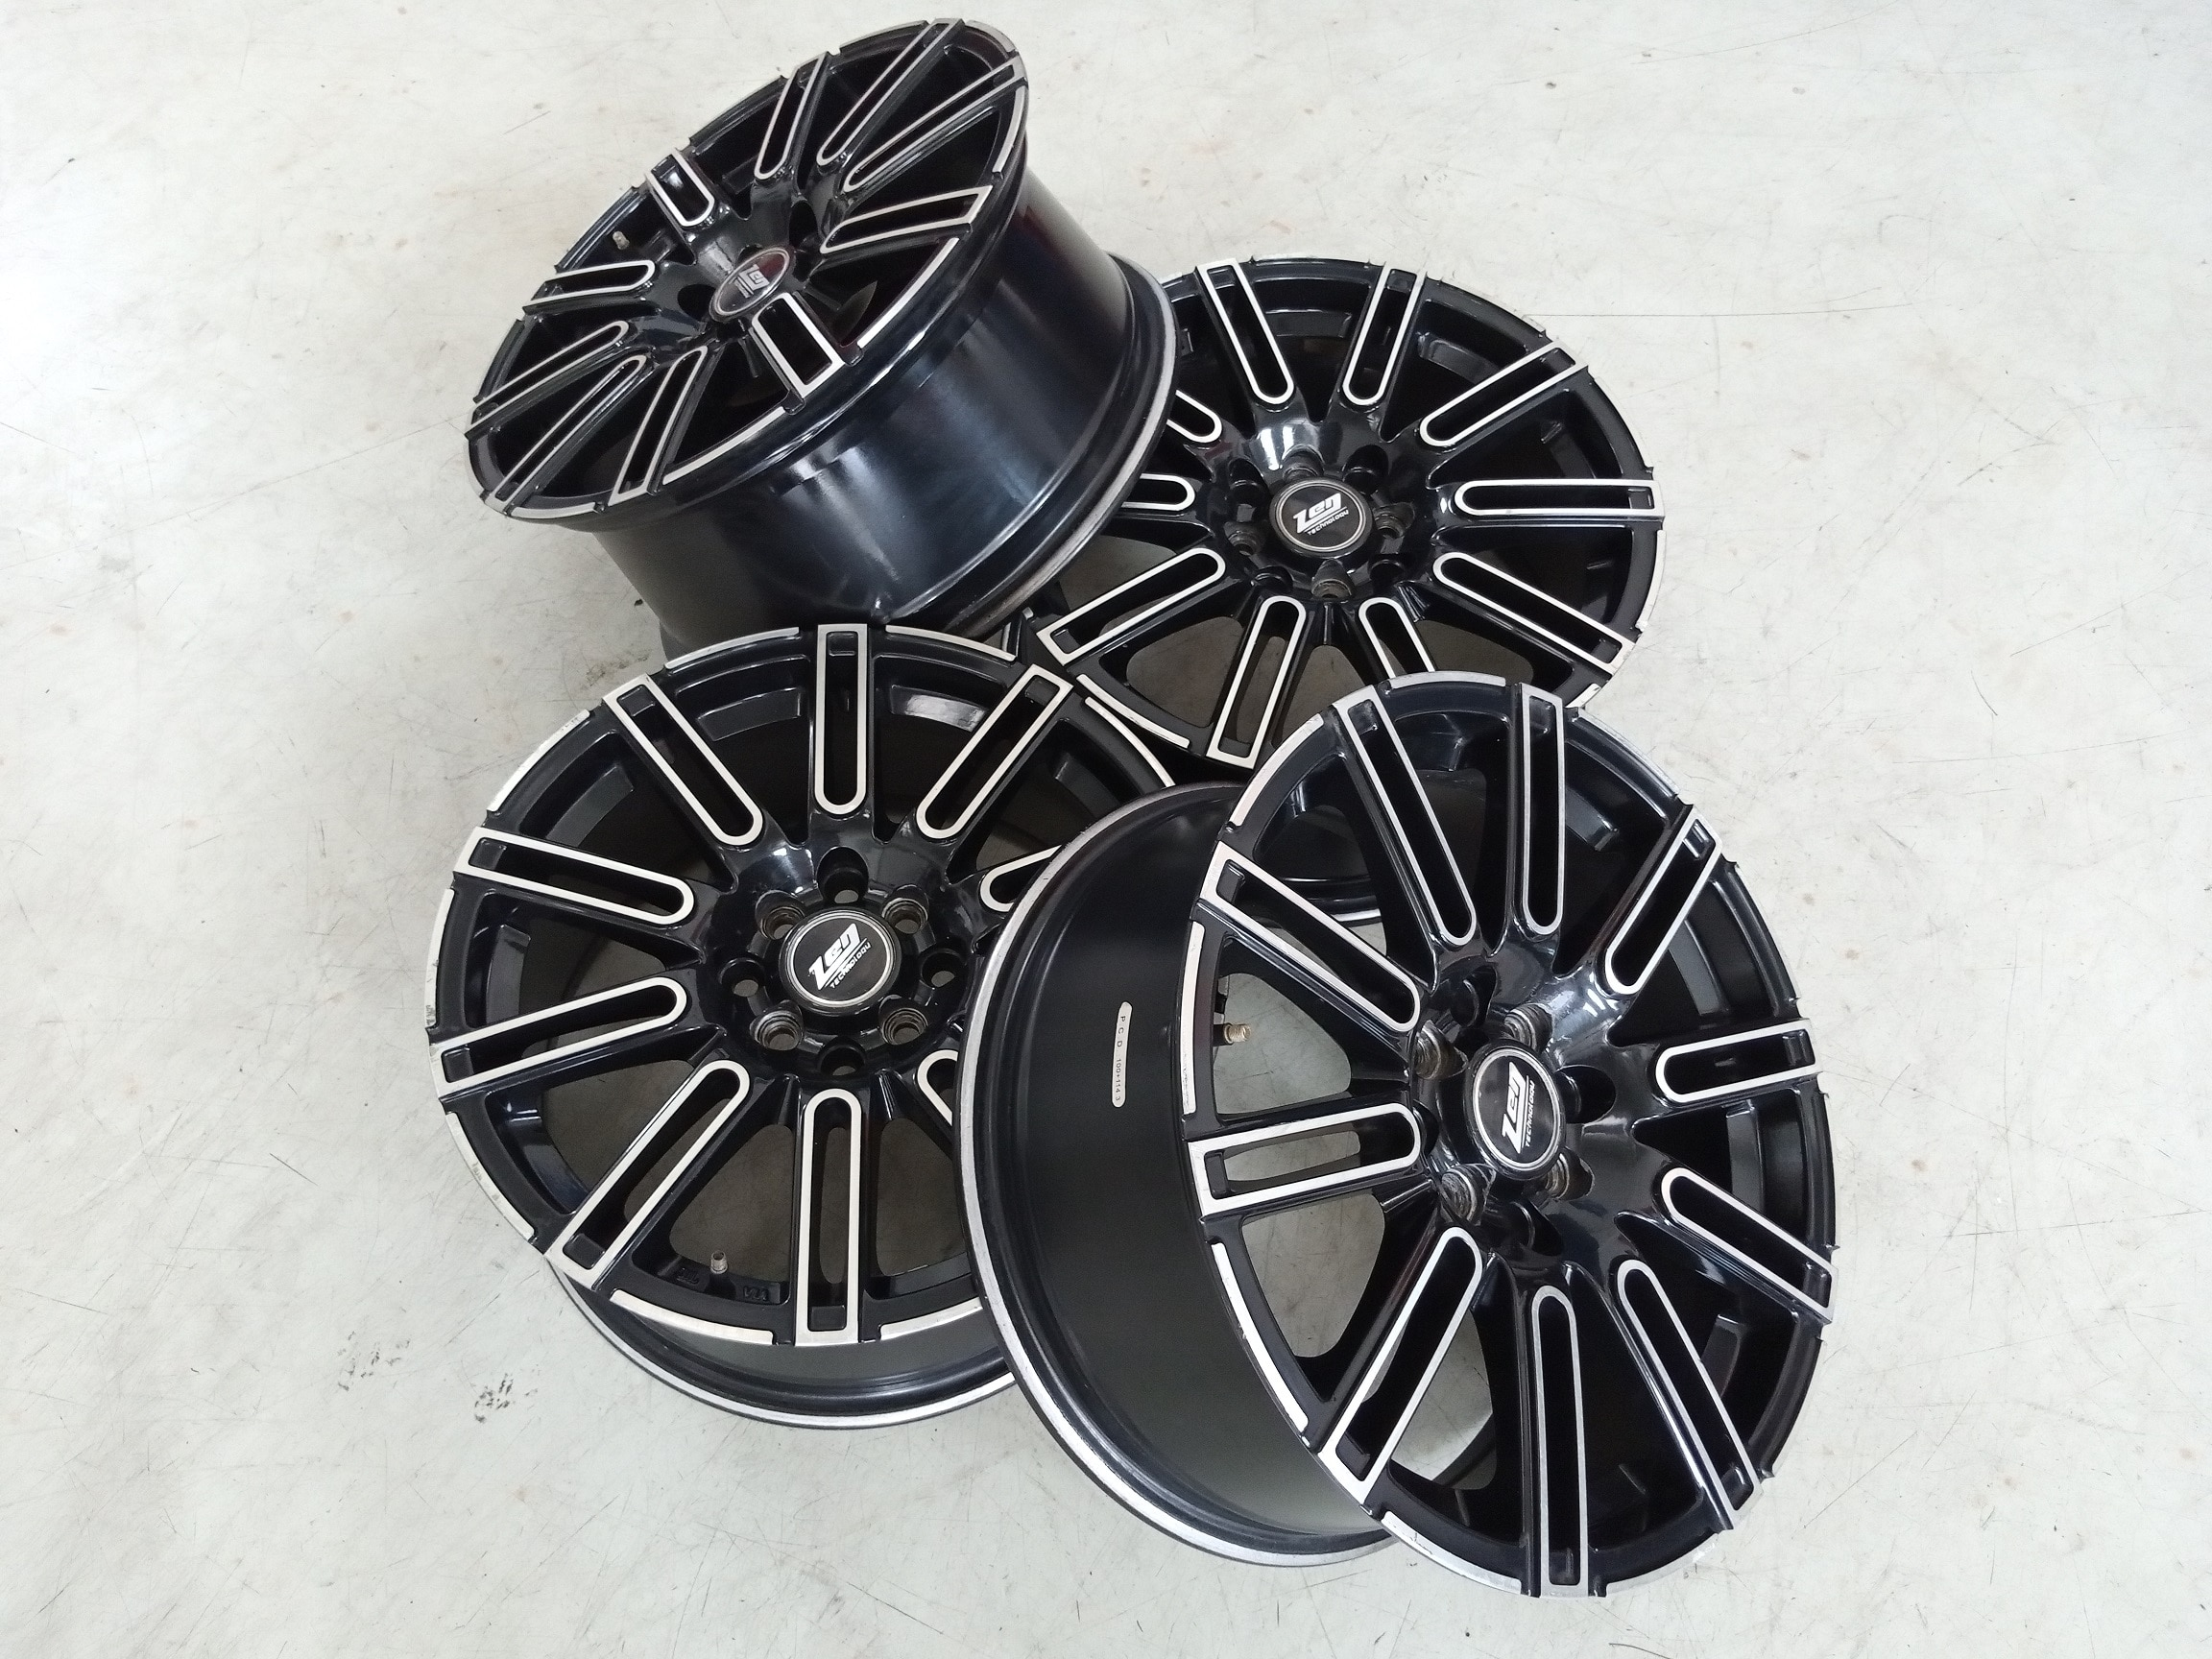 Velg Racing Seken Type ZEN Ring 16 Cocok ,Avanza ,Livina ,Jazz Rs ,Sigra